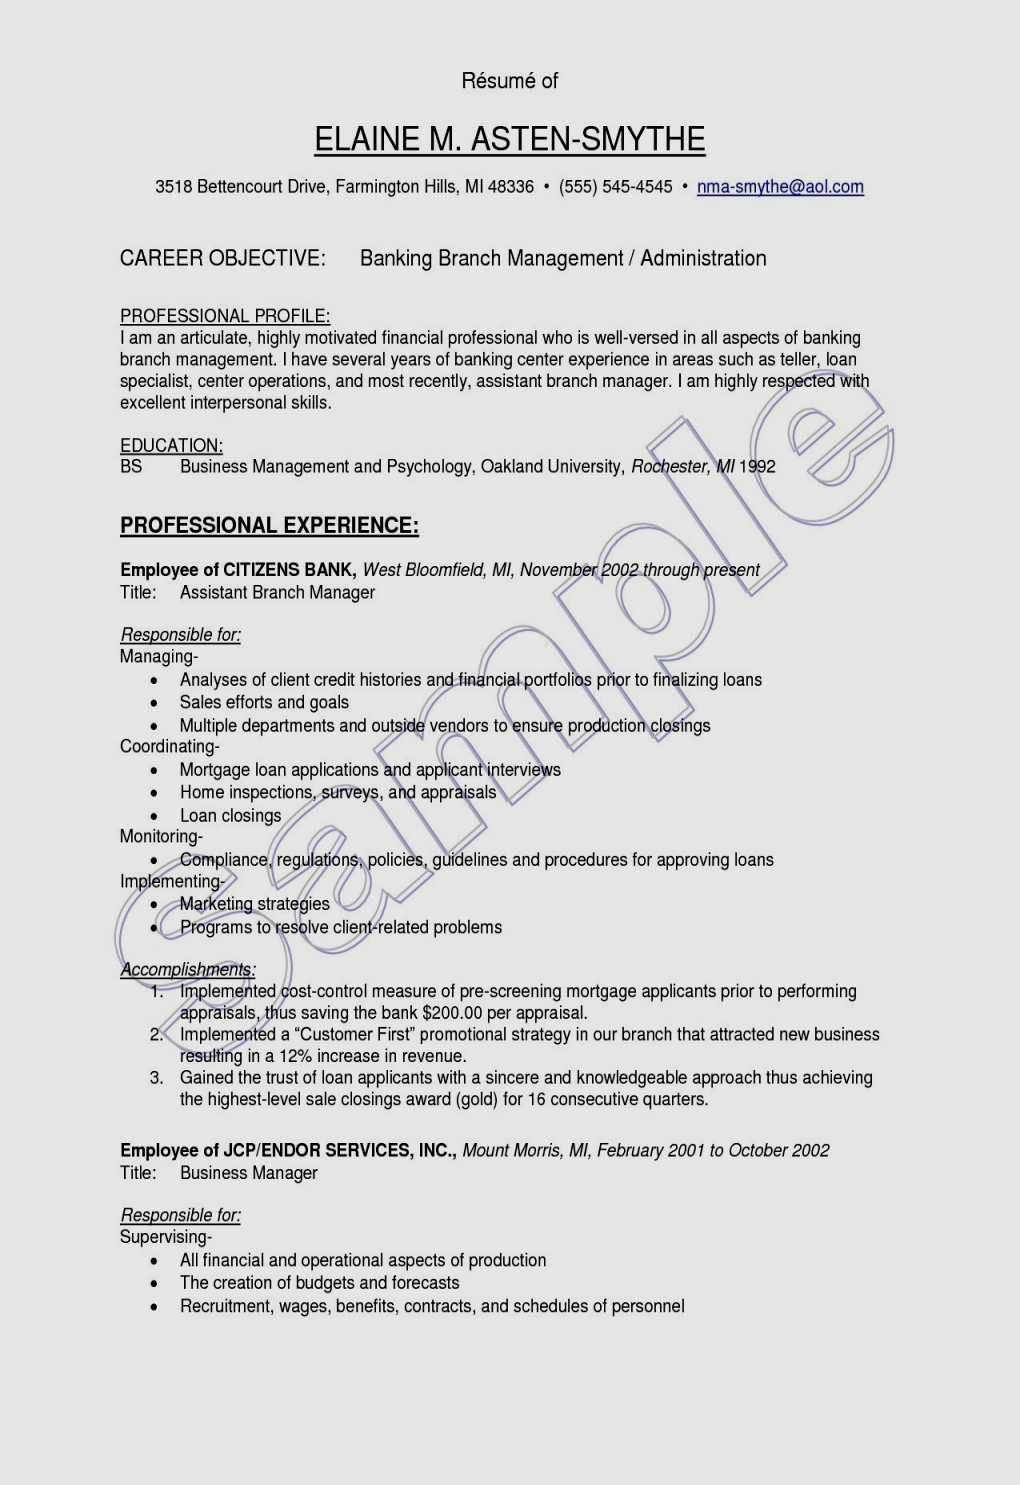 32 New Restaurant Assistant Manager Resume In 2020 Manager